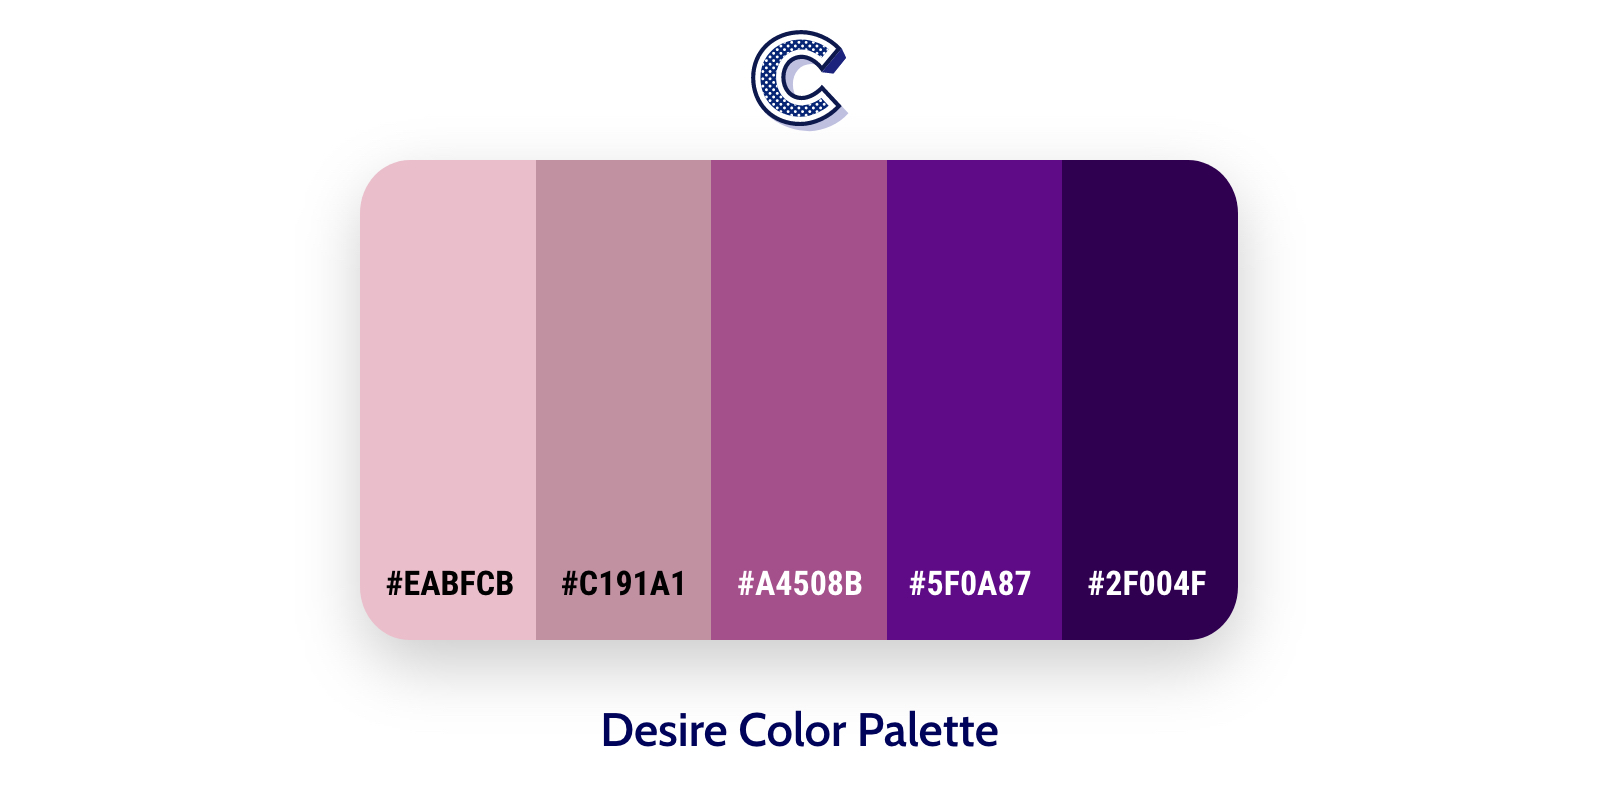 the featured image of desire color palette